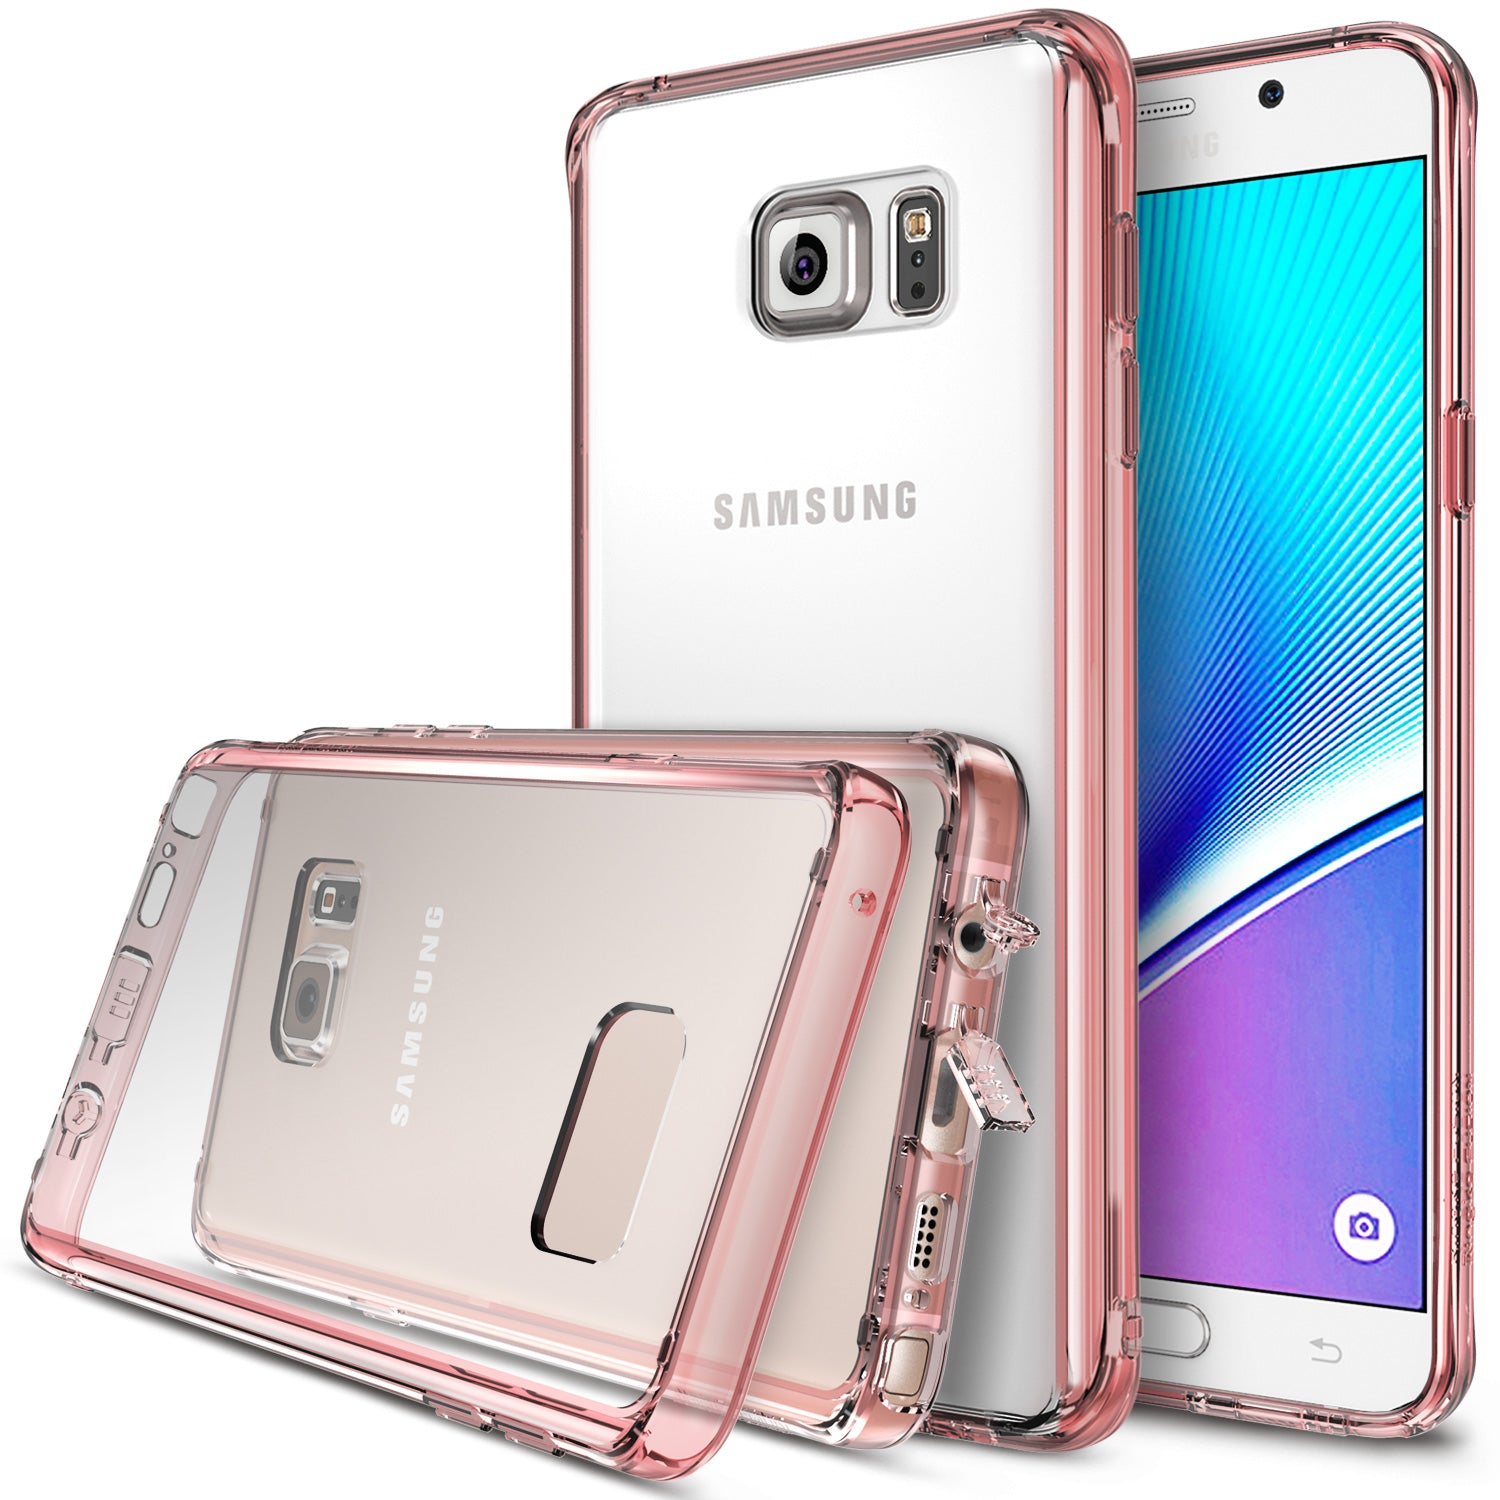 ringke fusion for samsung galaxy note 5 - rose gold